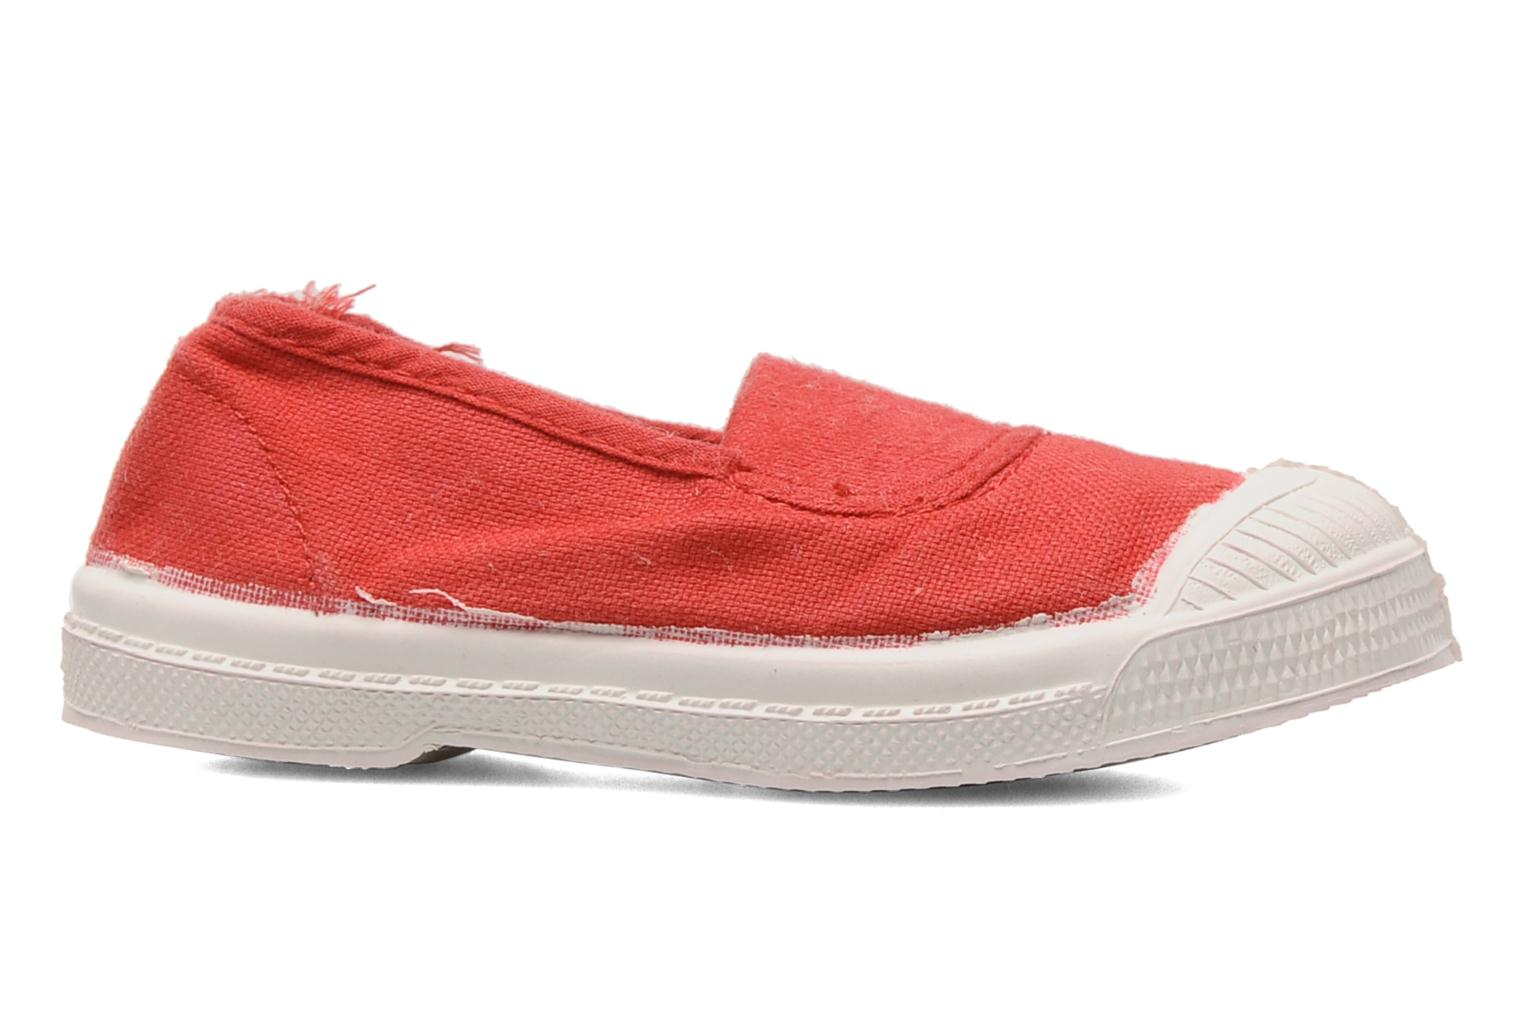 Baskets Bensimon Tennis Elastique E Orange vue derrière